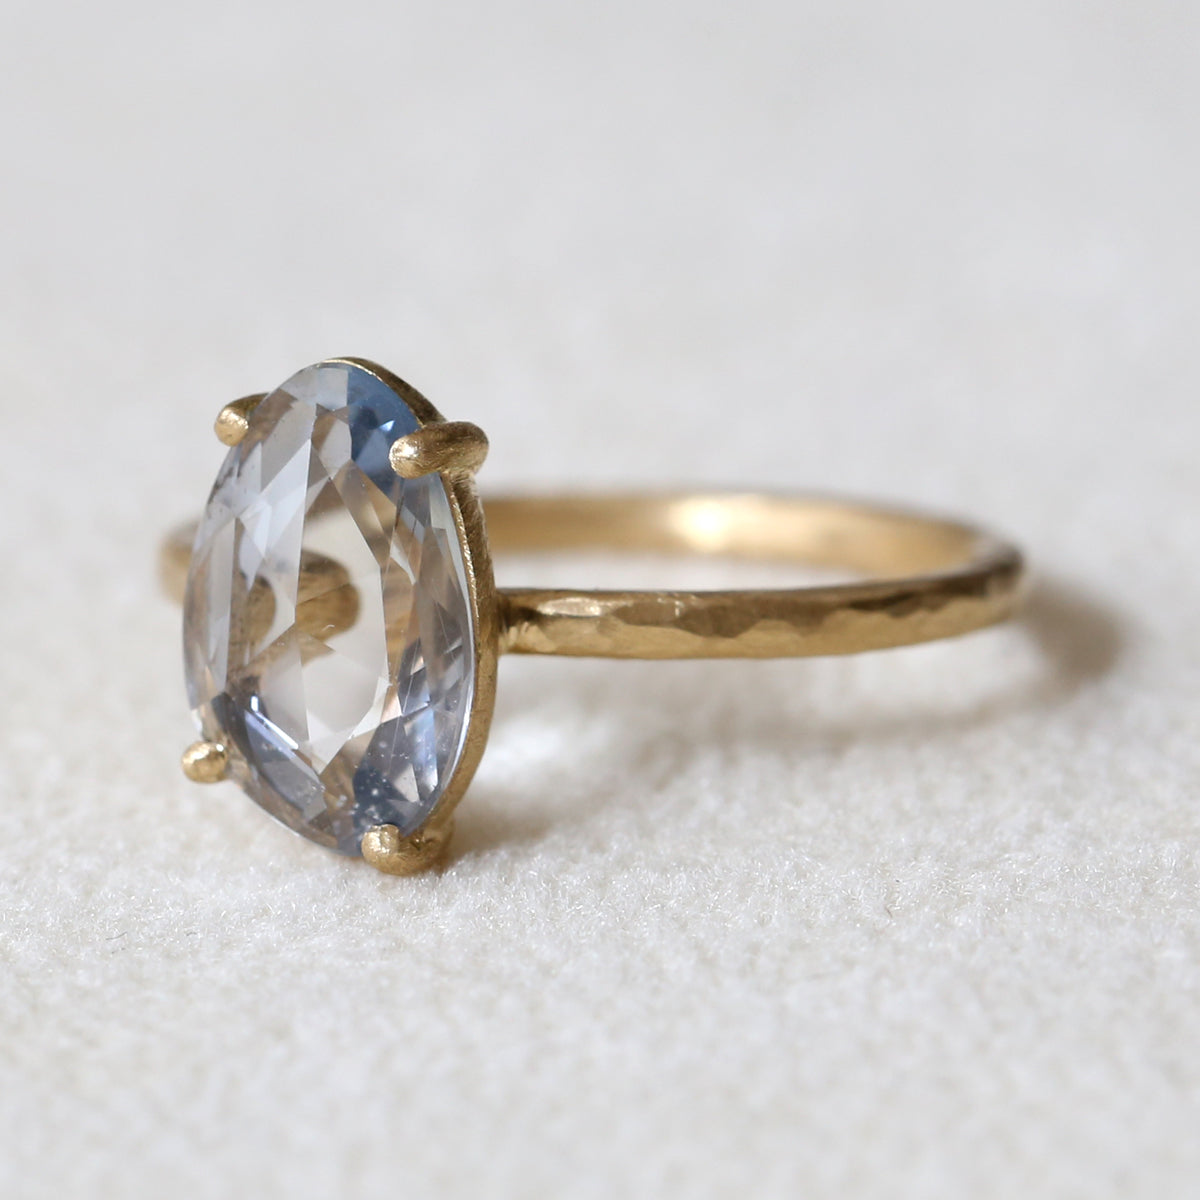 1.71ct Pale Blue Sapphire Ring